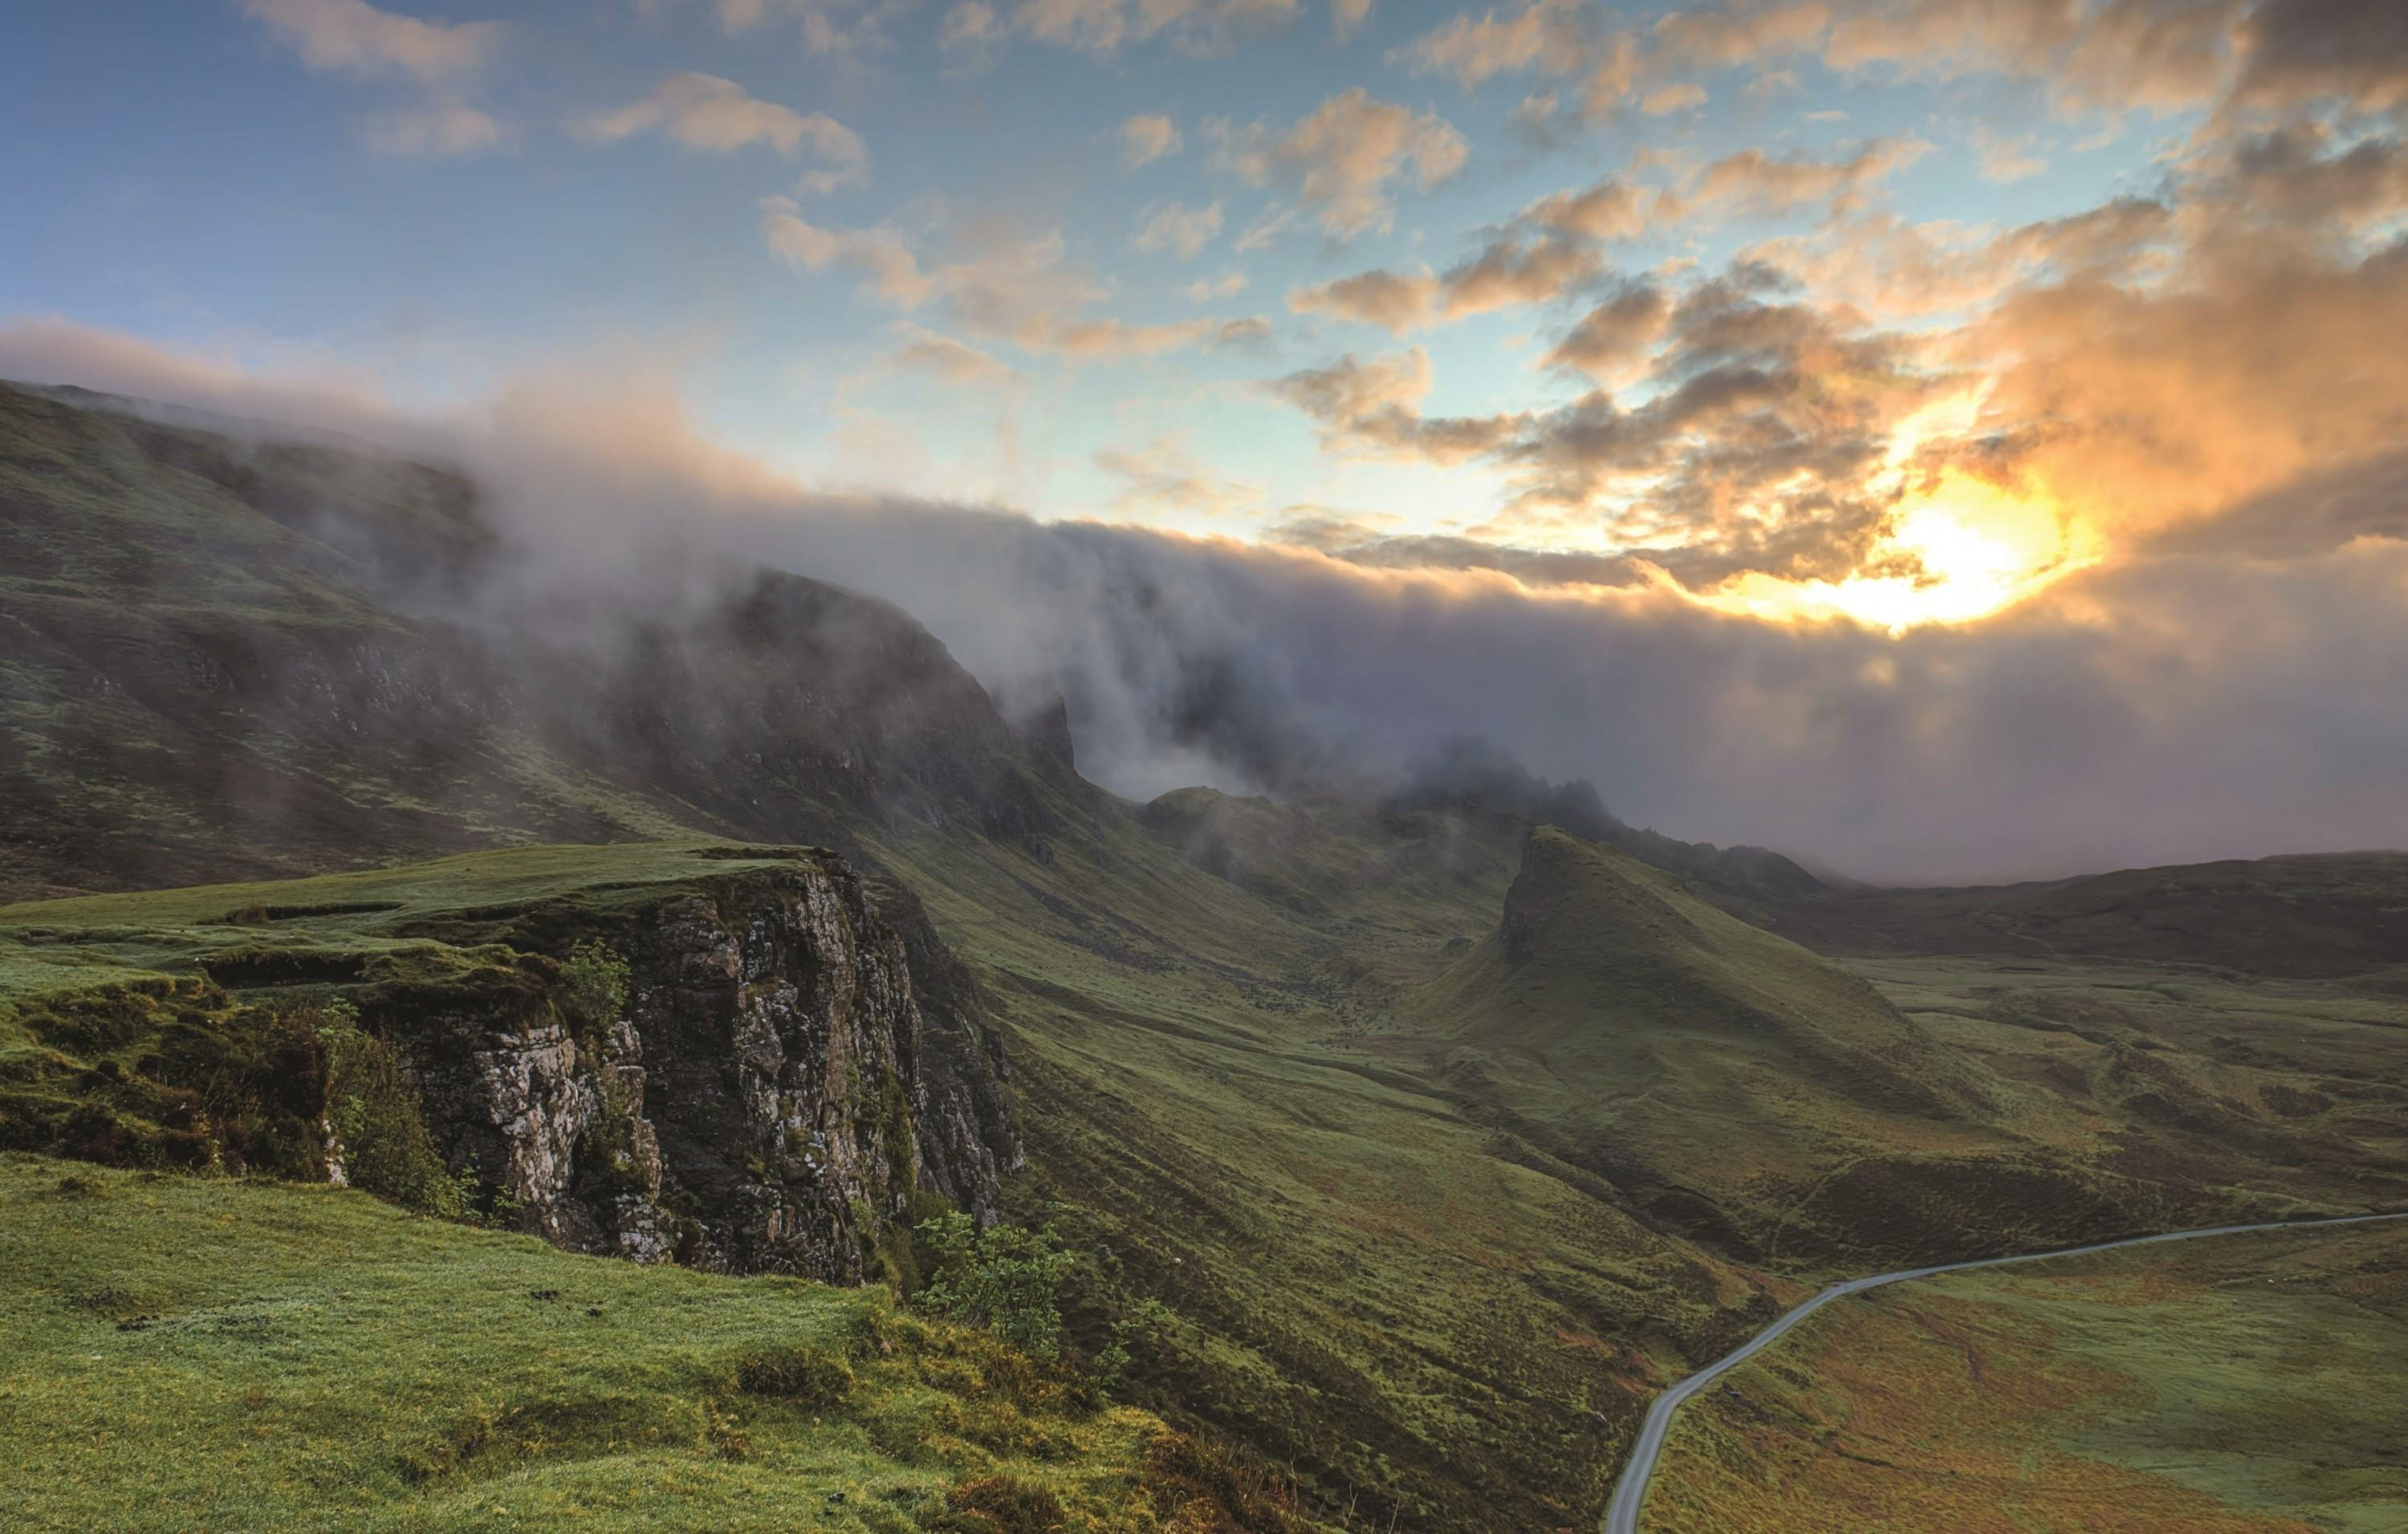 Download 3000x1911 Isle Of Skye, Scotland, Clouds, Sunset, Hills